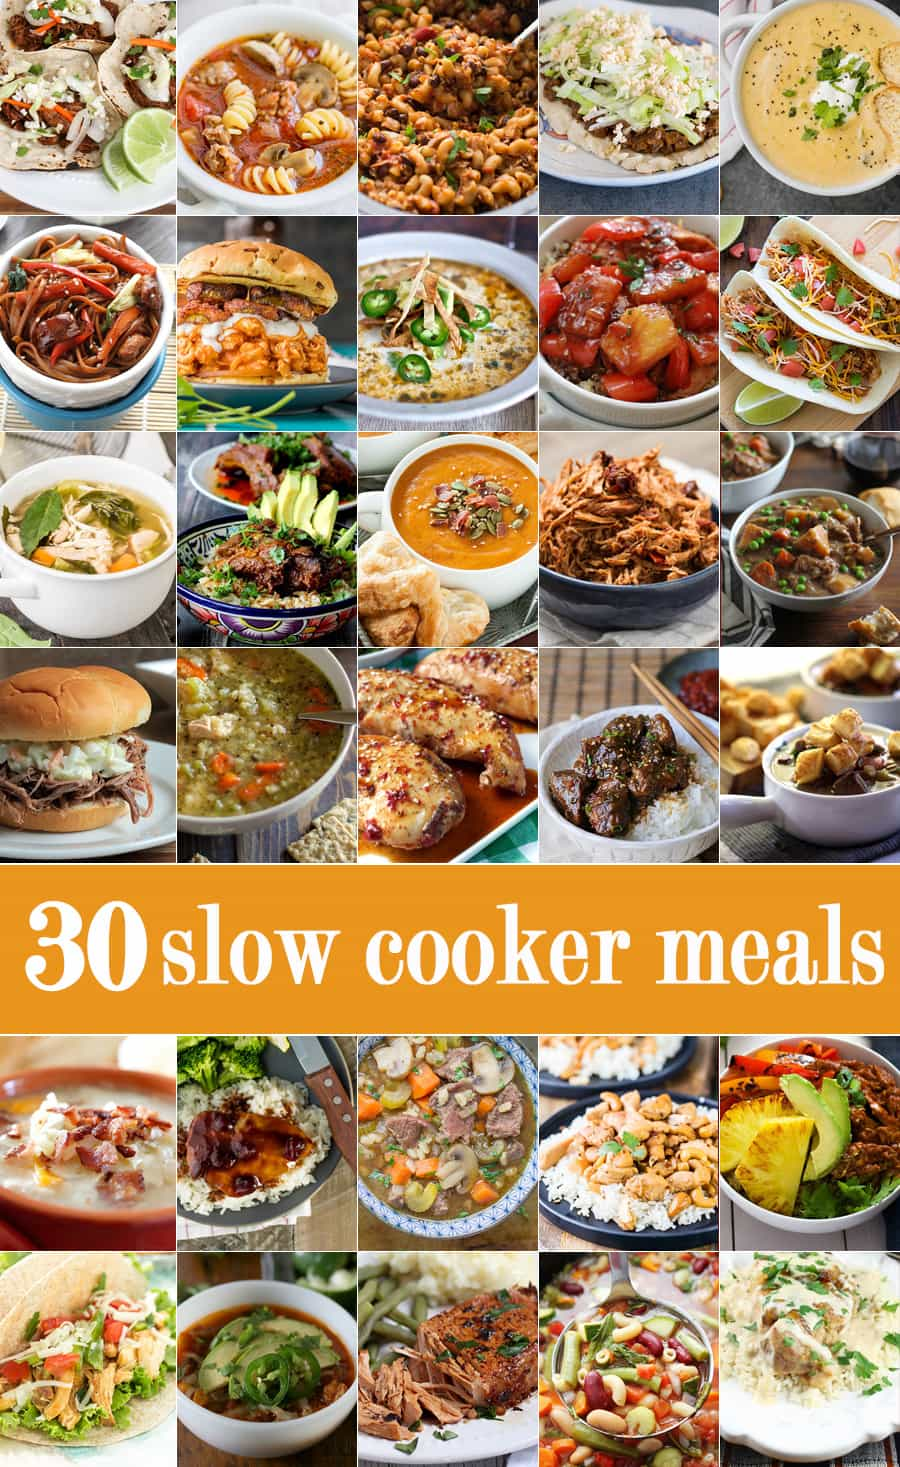 30 SLOW COOKER MEALS! These are the best ever easy recipes for a crockpot all in one place! If you need an easy dinner idea, you've come to the right place!